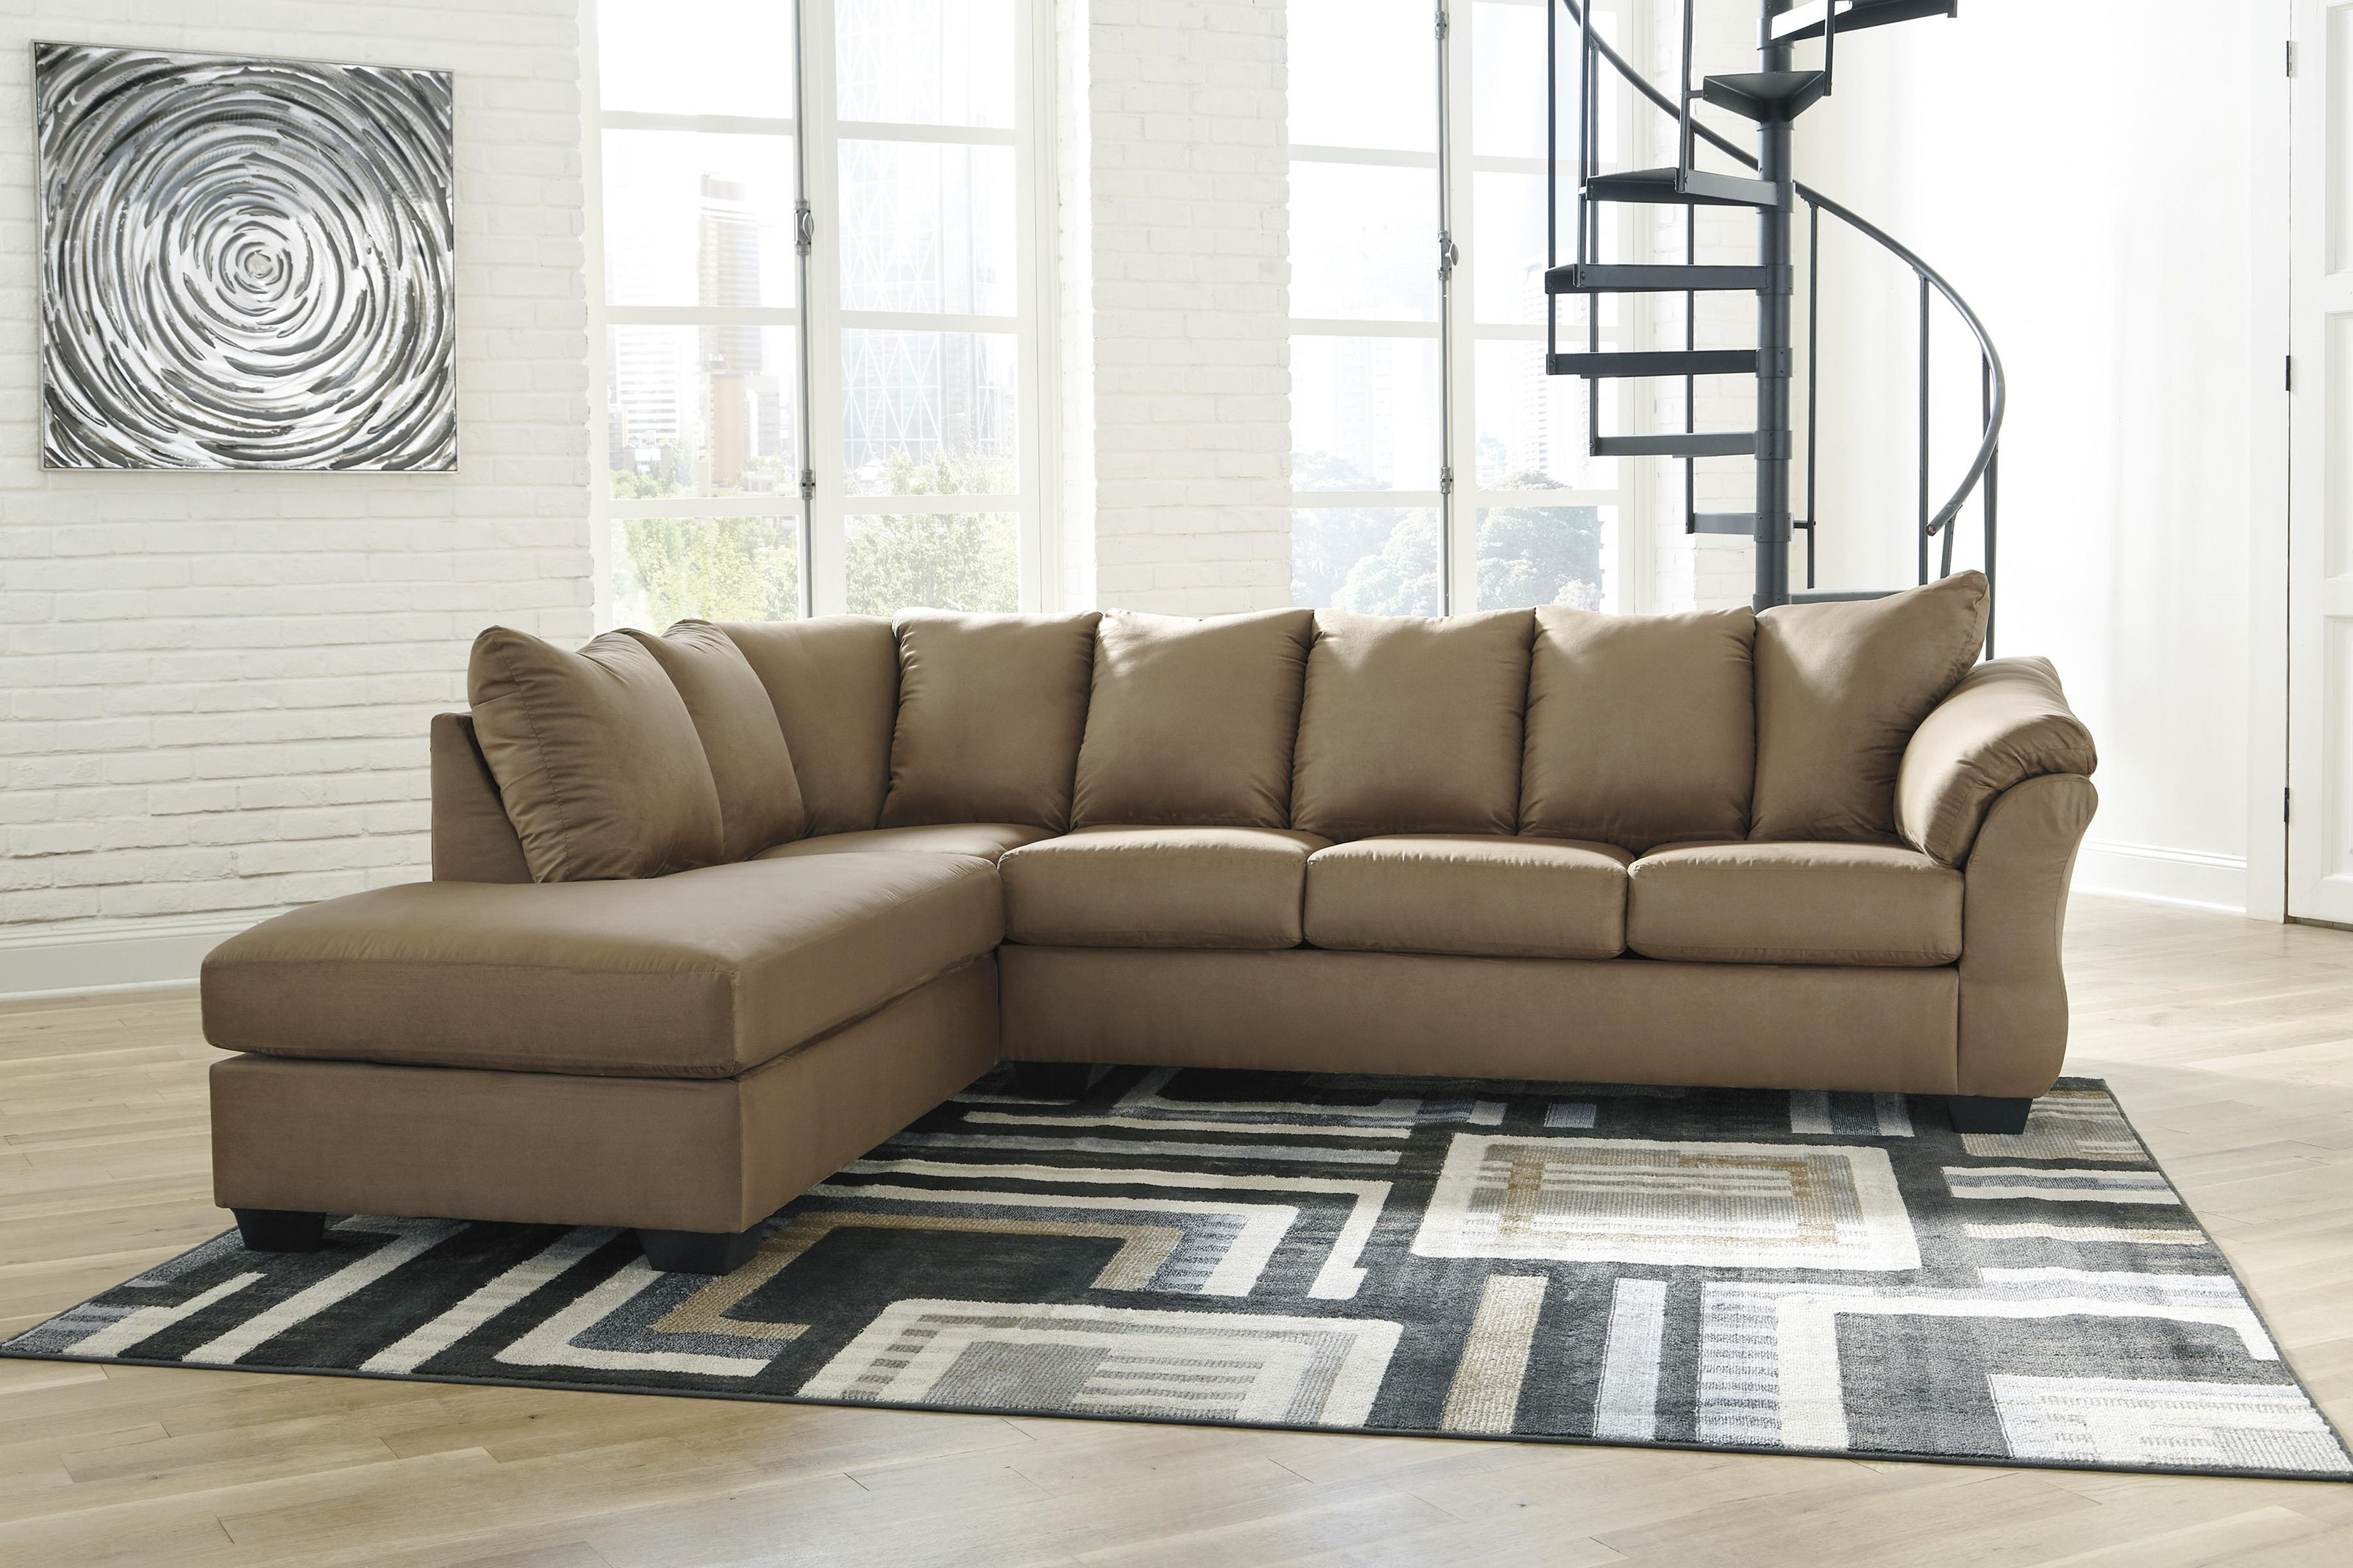 Darcy - Mocha 2 PC Sectional and Recliner Set by Signature Design by Ashley at Sam Levitz Furniture